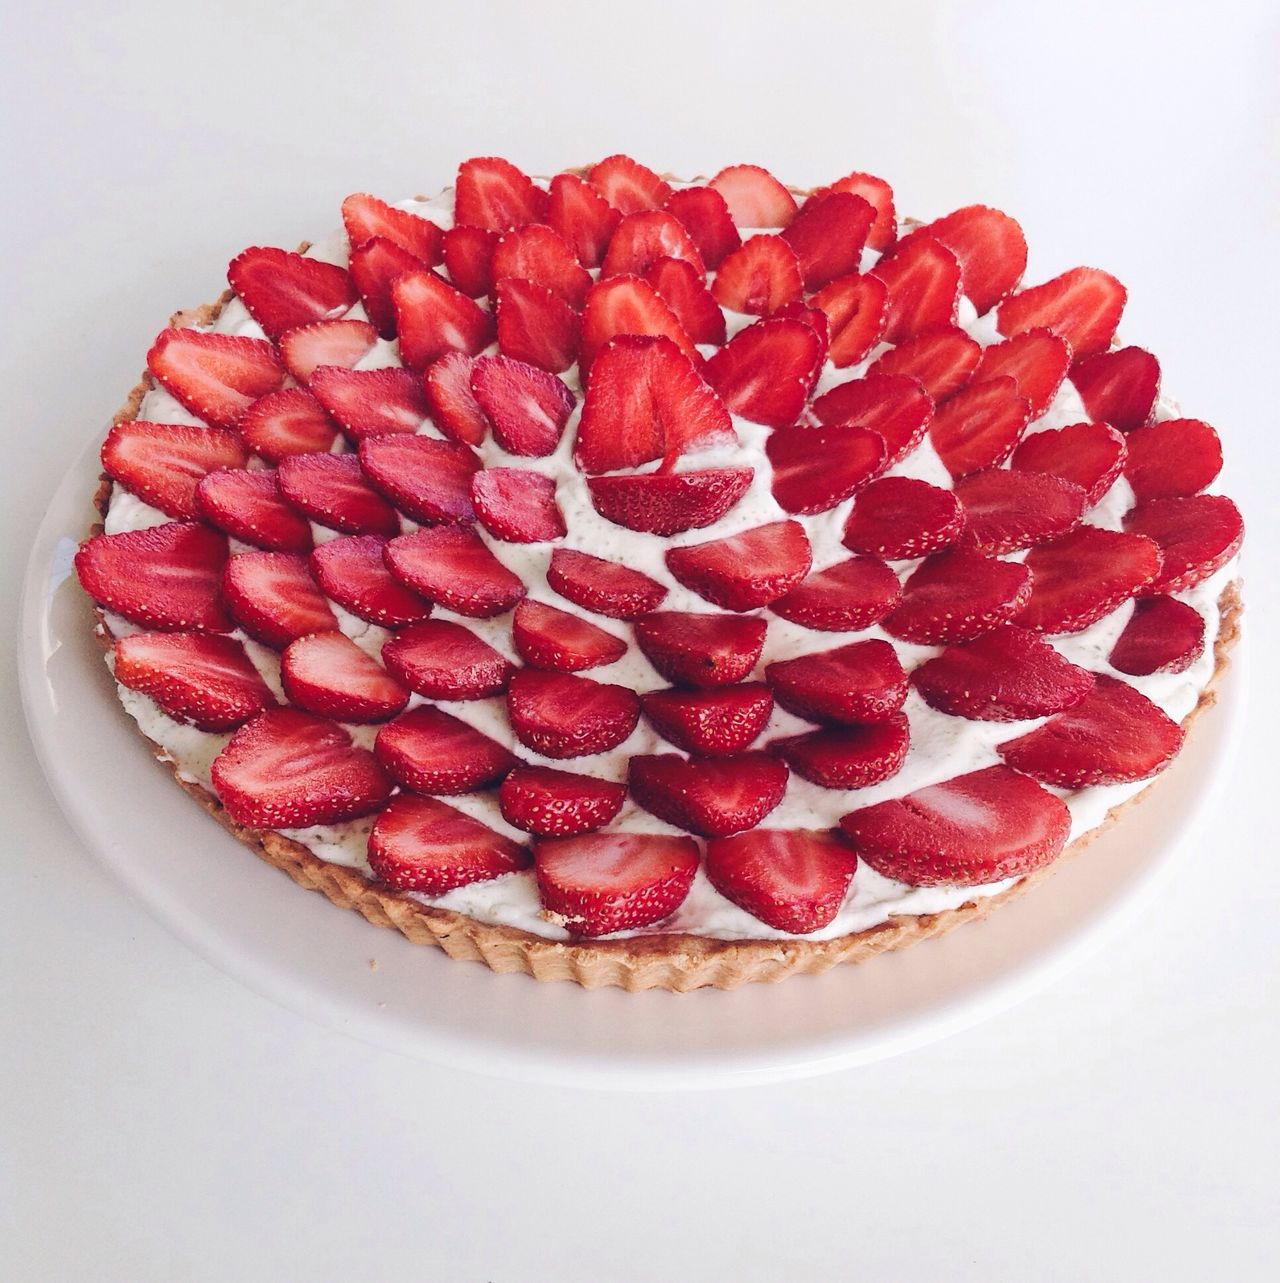 TarteAuxFraises Strawberries Strawberry Cake Whipped Cream Red Fruit Food And Drink Sweet Food Indulgence Dessert Close-up No People Temptation Ready-to-eat Naschen  Lifestyle Photography Minimalist White Background Pie Homemade Baked Tarte Gourmet Gourmandise Frenchpastry